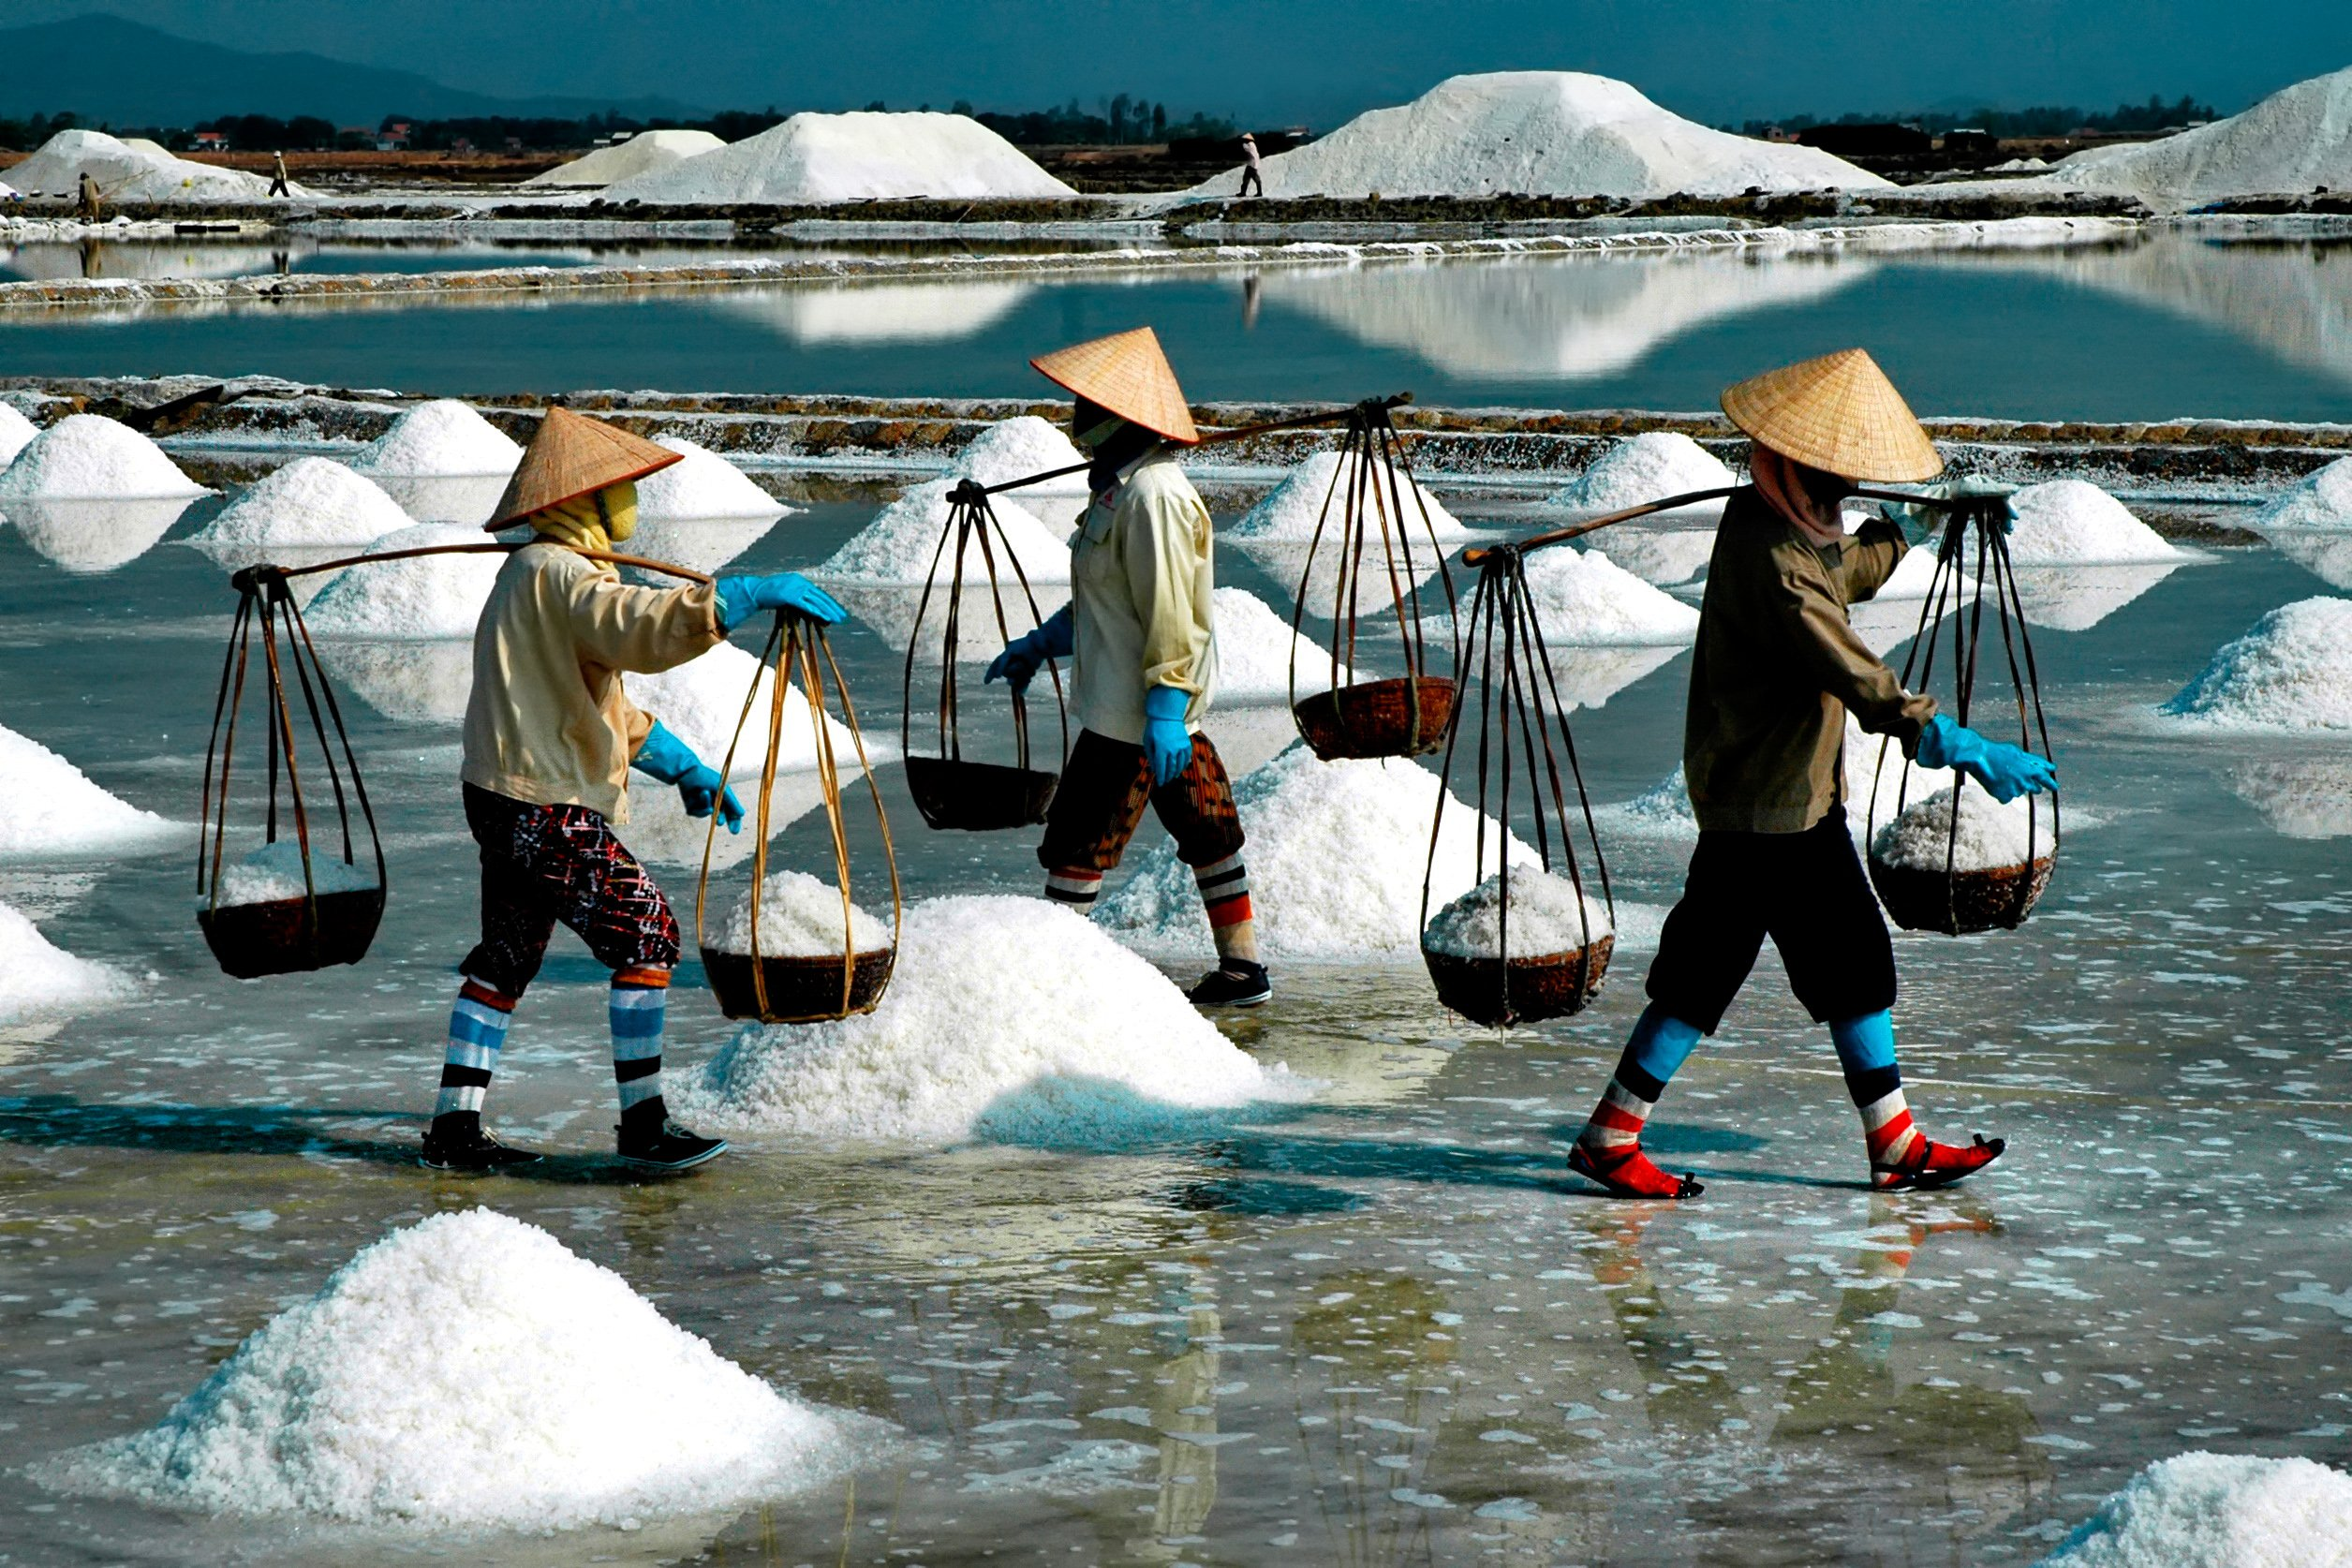 Salt pond workers in Khanh Hoa, taken on Vietnam photo tour